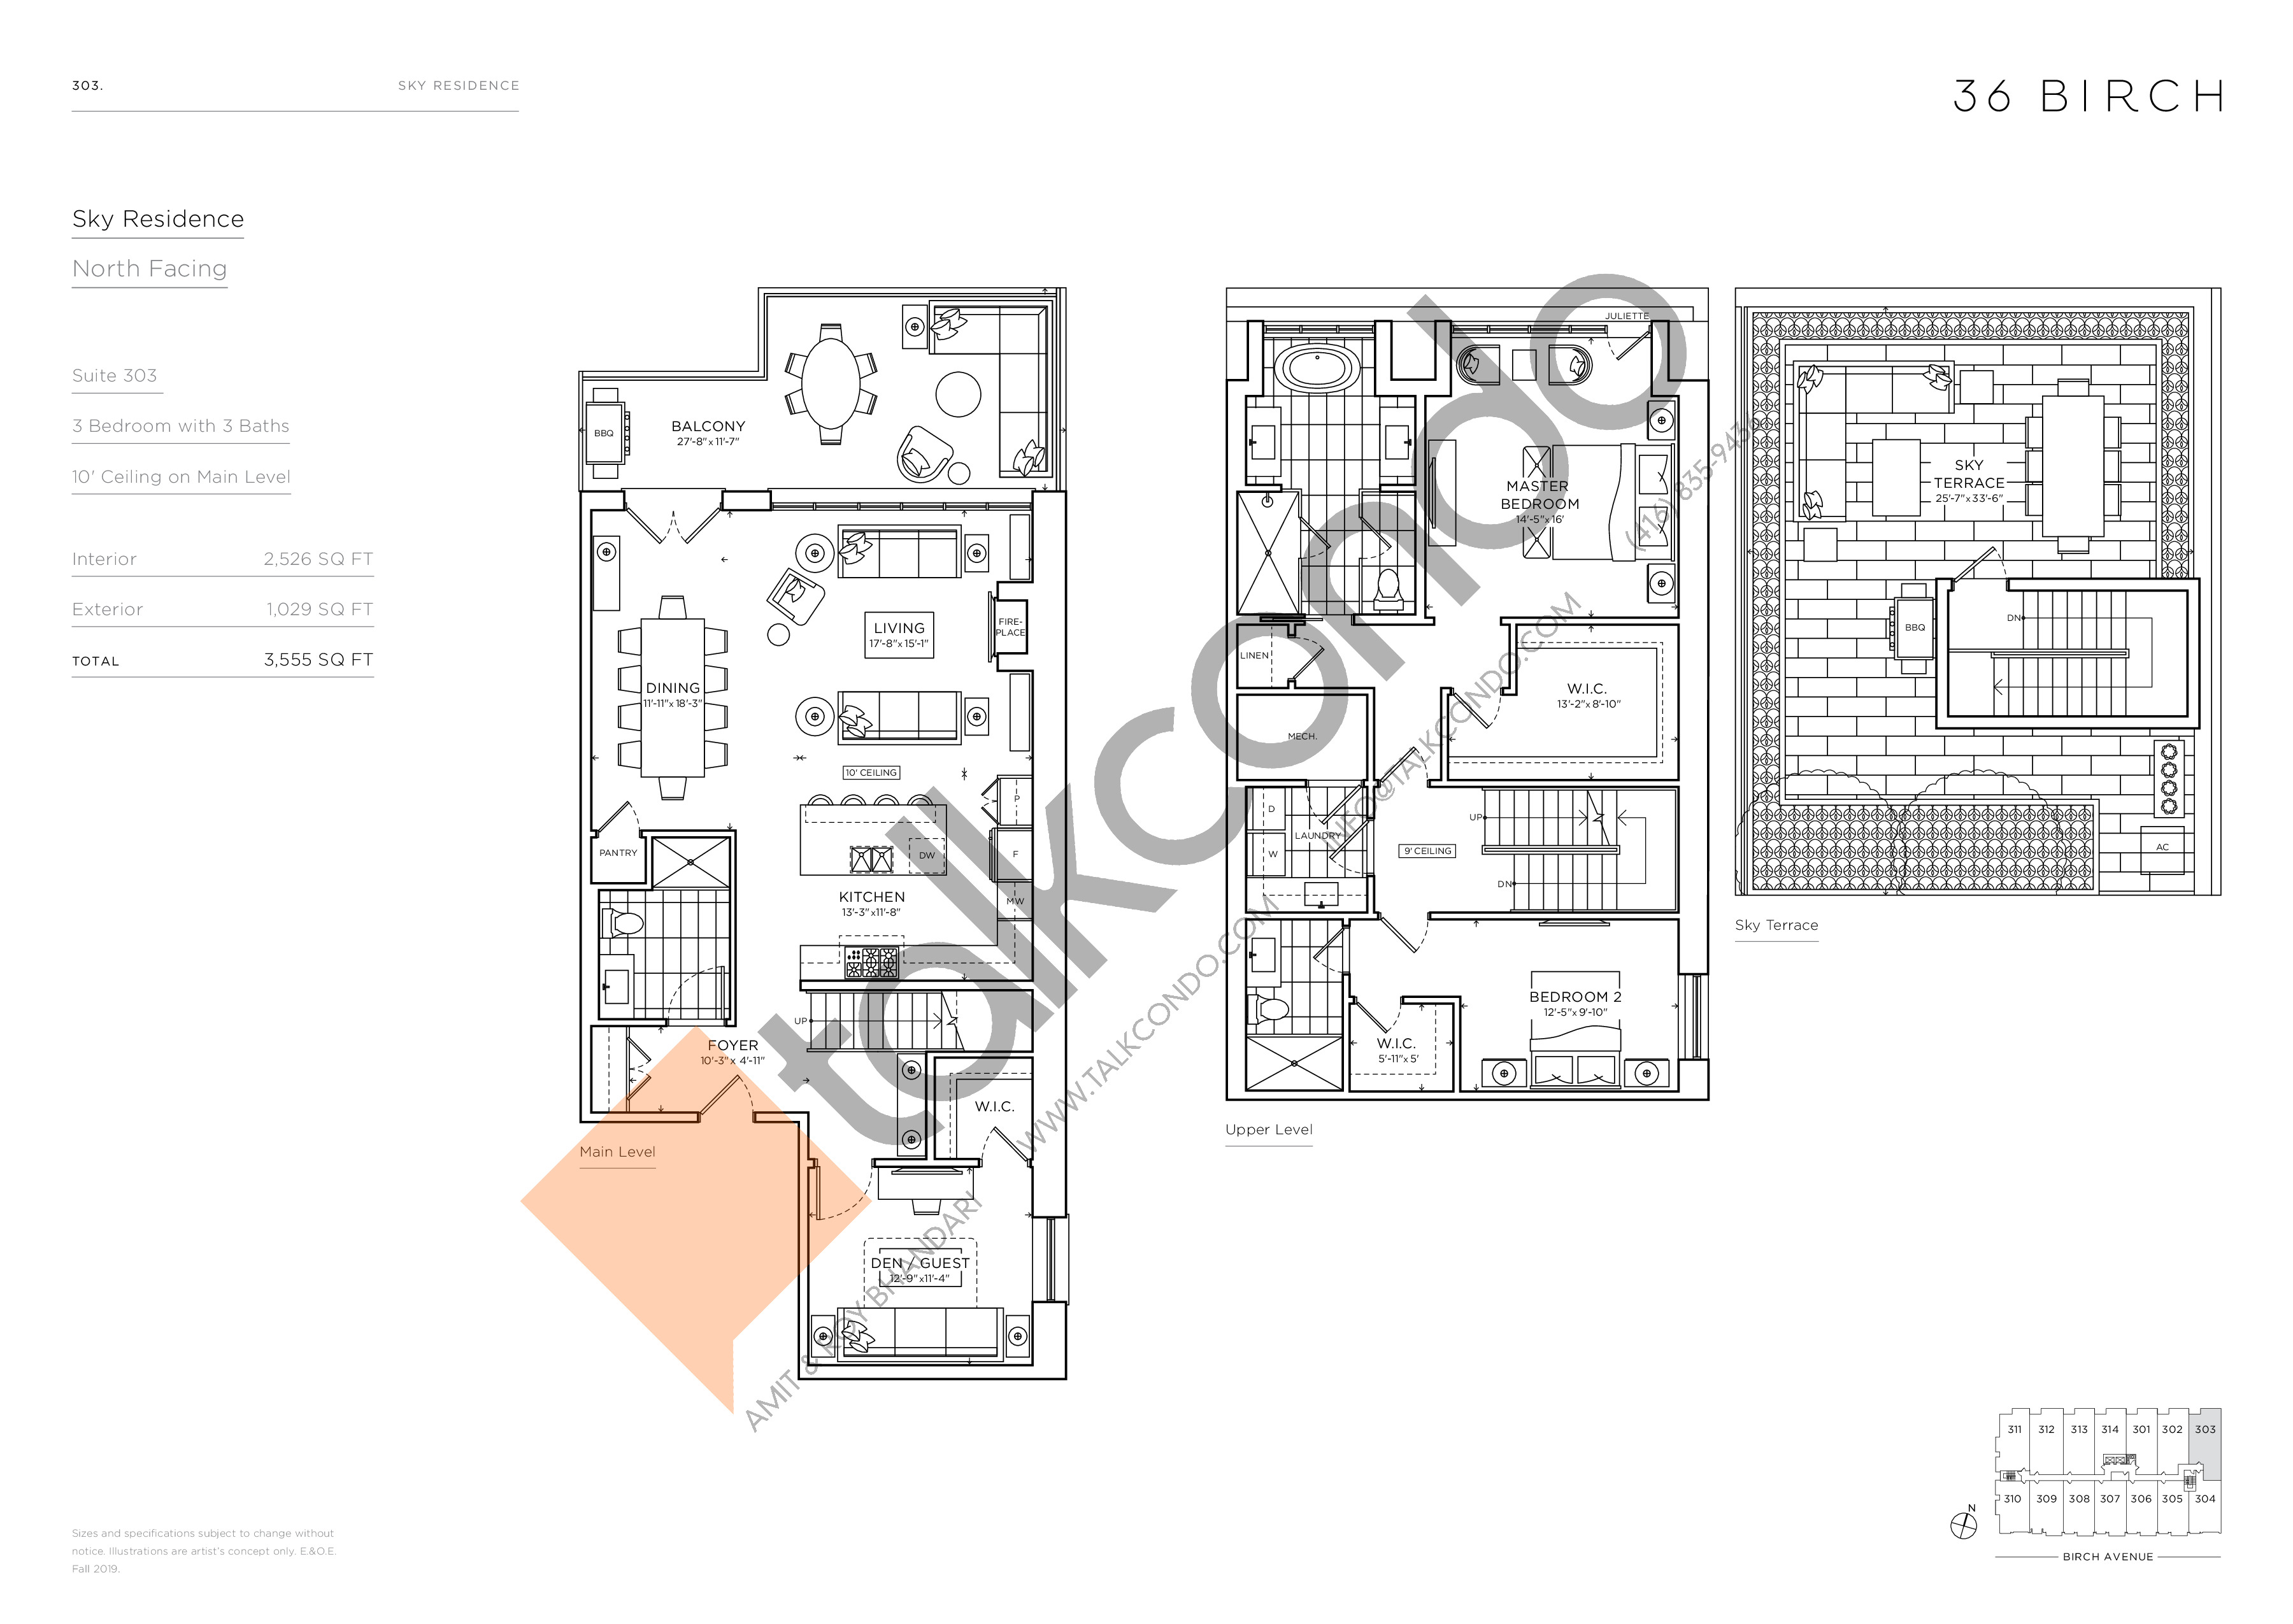 303 - Sky Residence Floor Plan at 36 Birch Condos - 2526 sq.ft